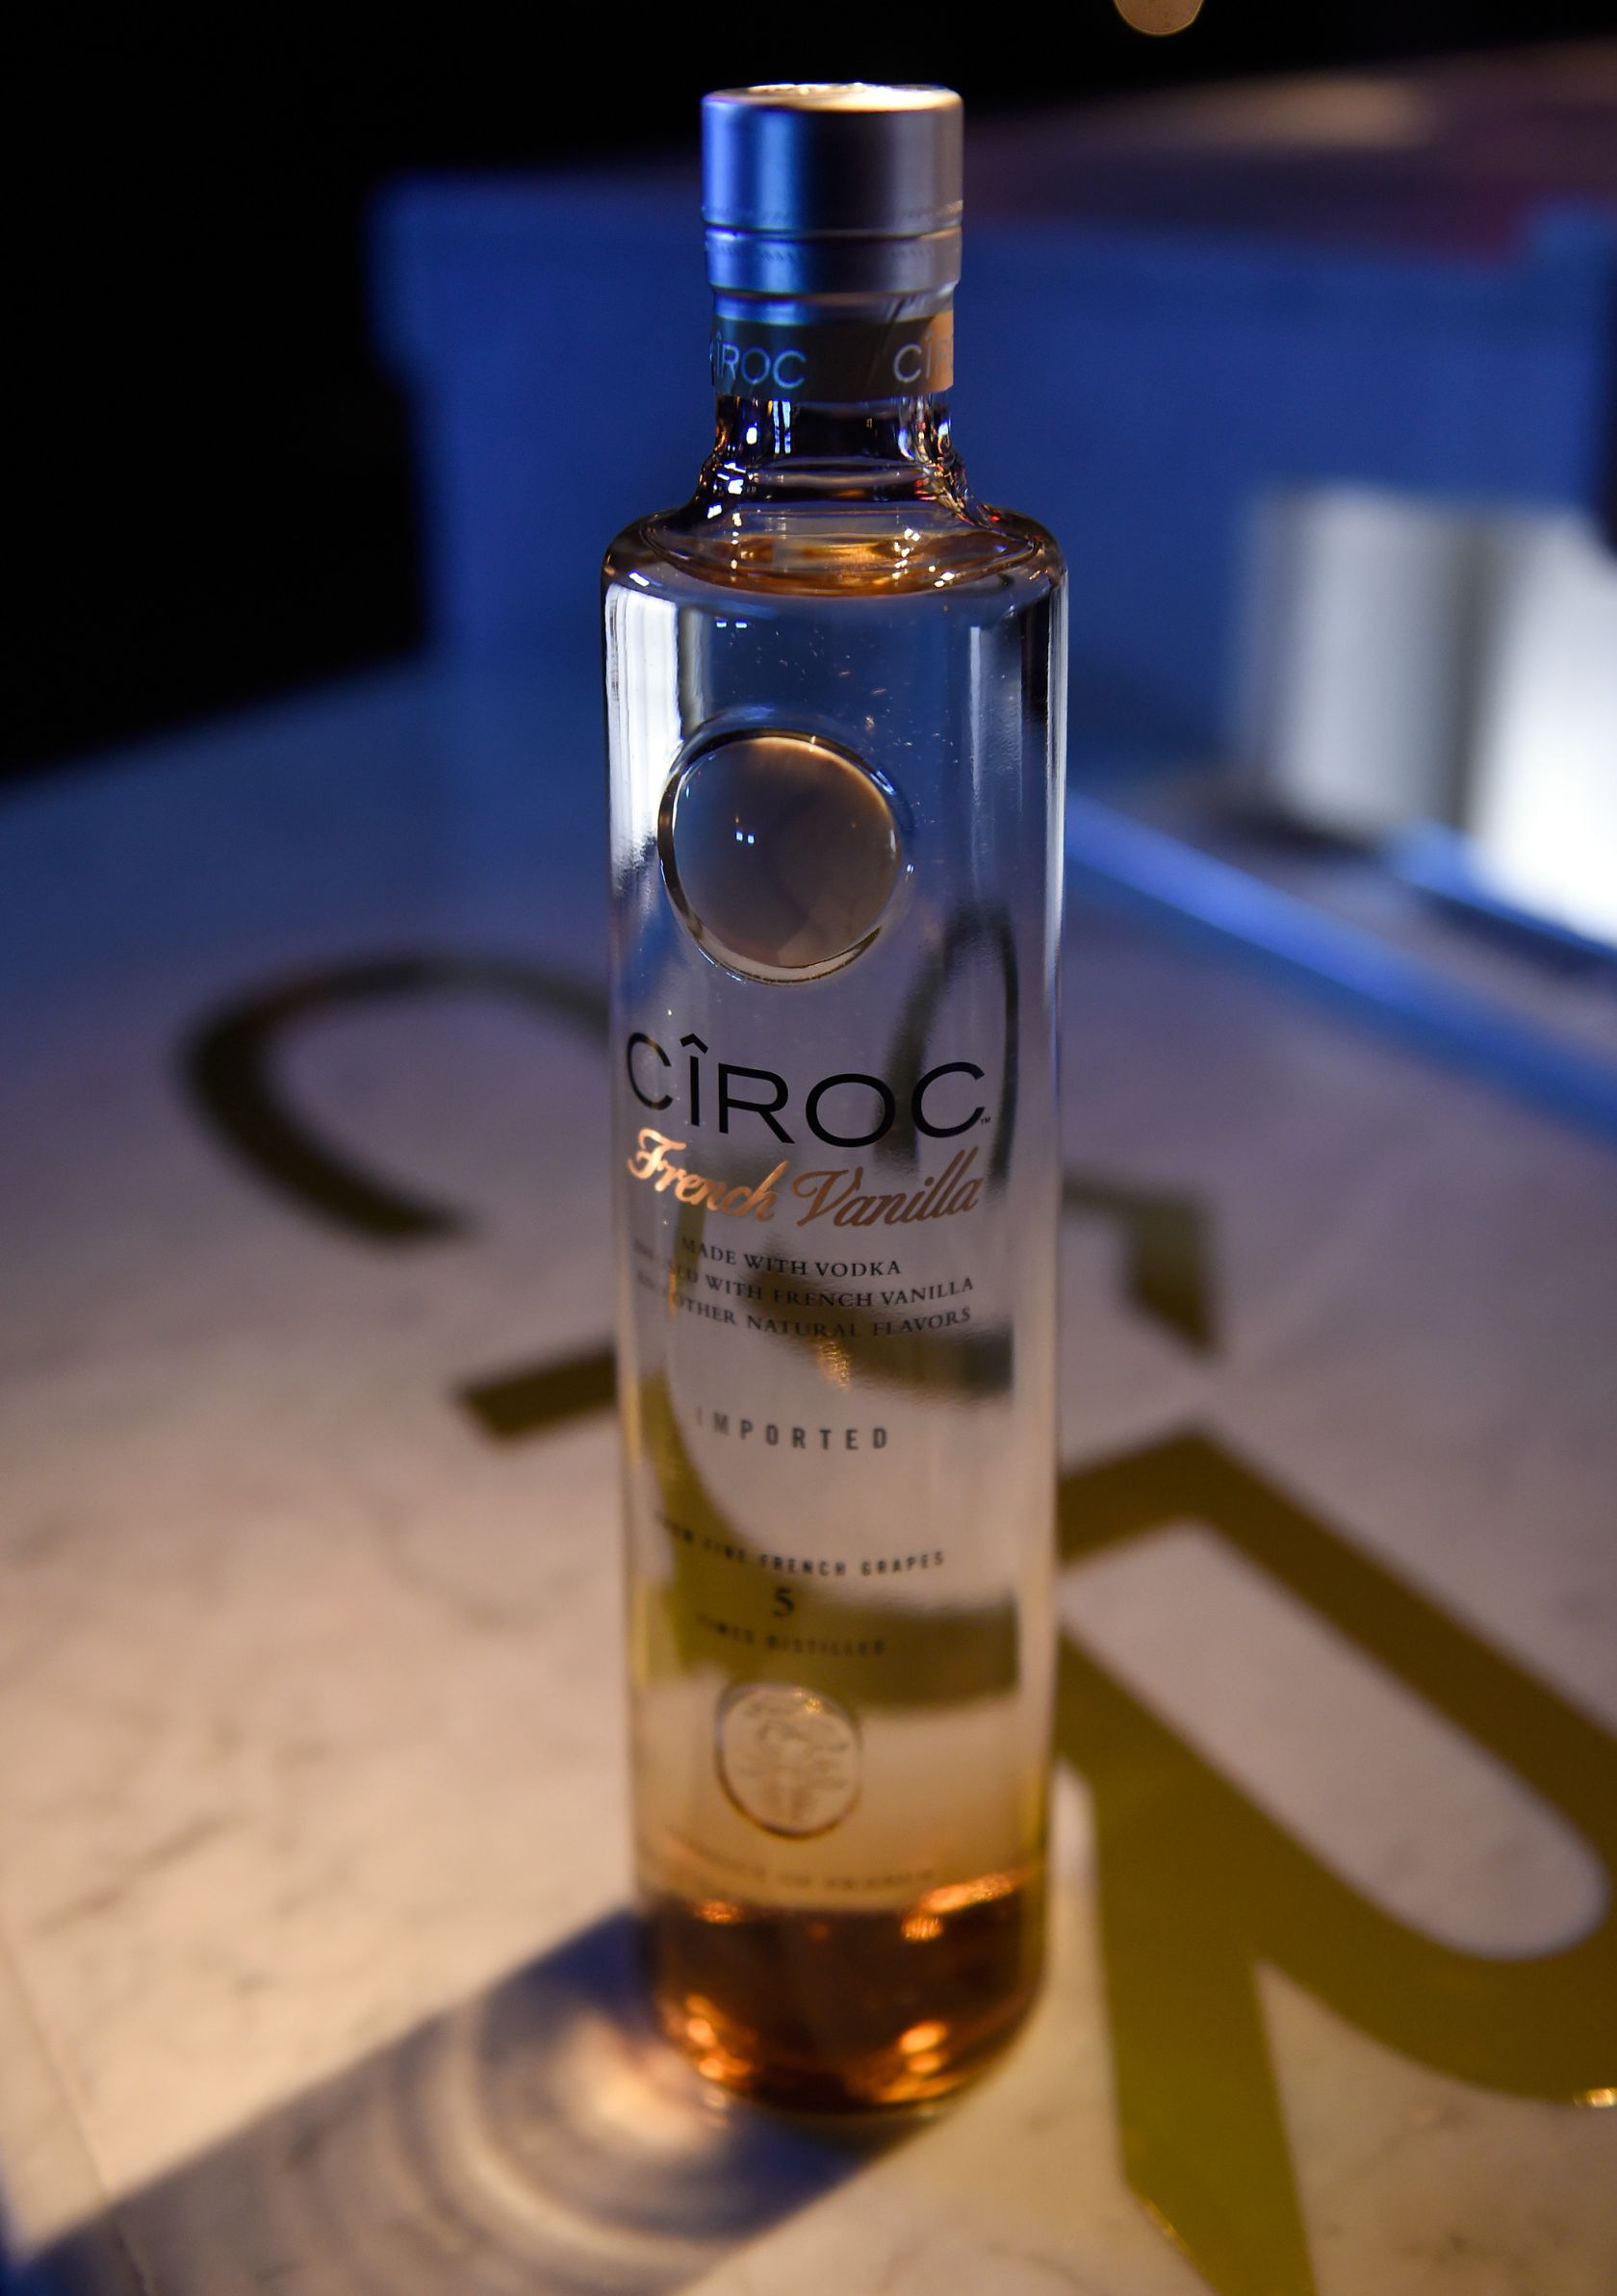 Ciroc's New Star-Studded 'Rat Pack' Ad With Jessica White, Eva Marcille & More